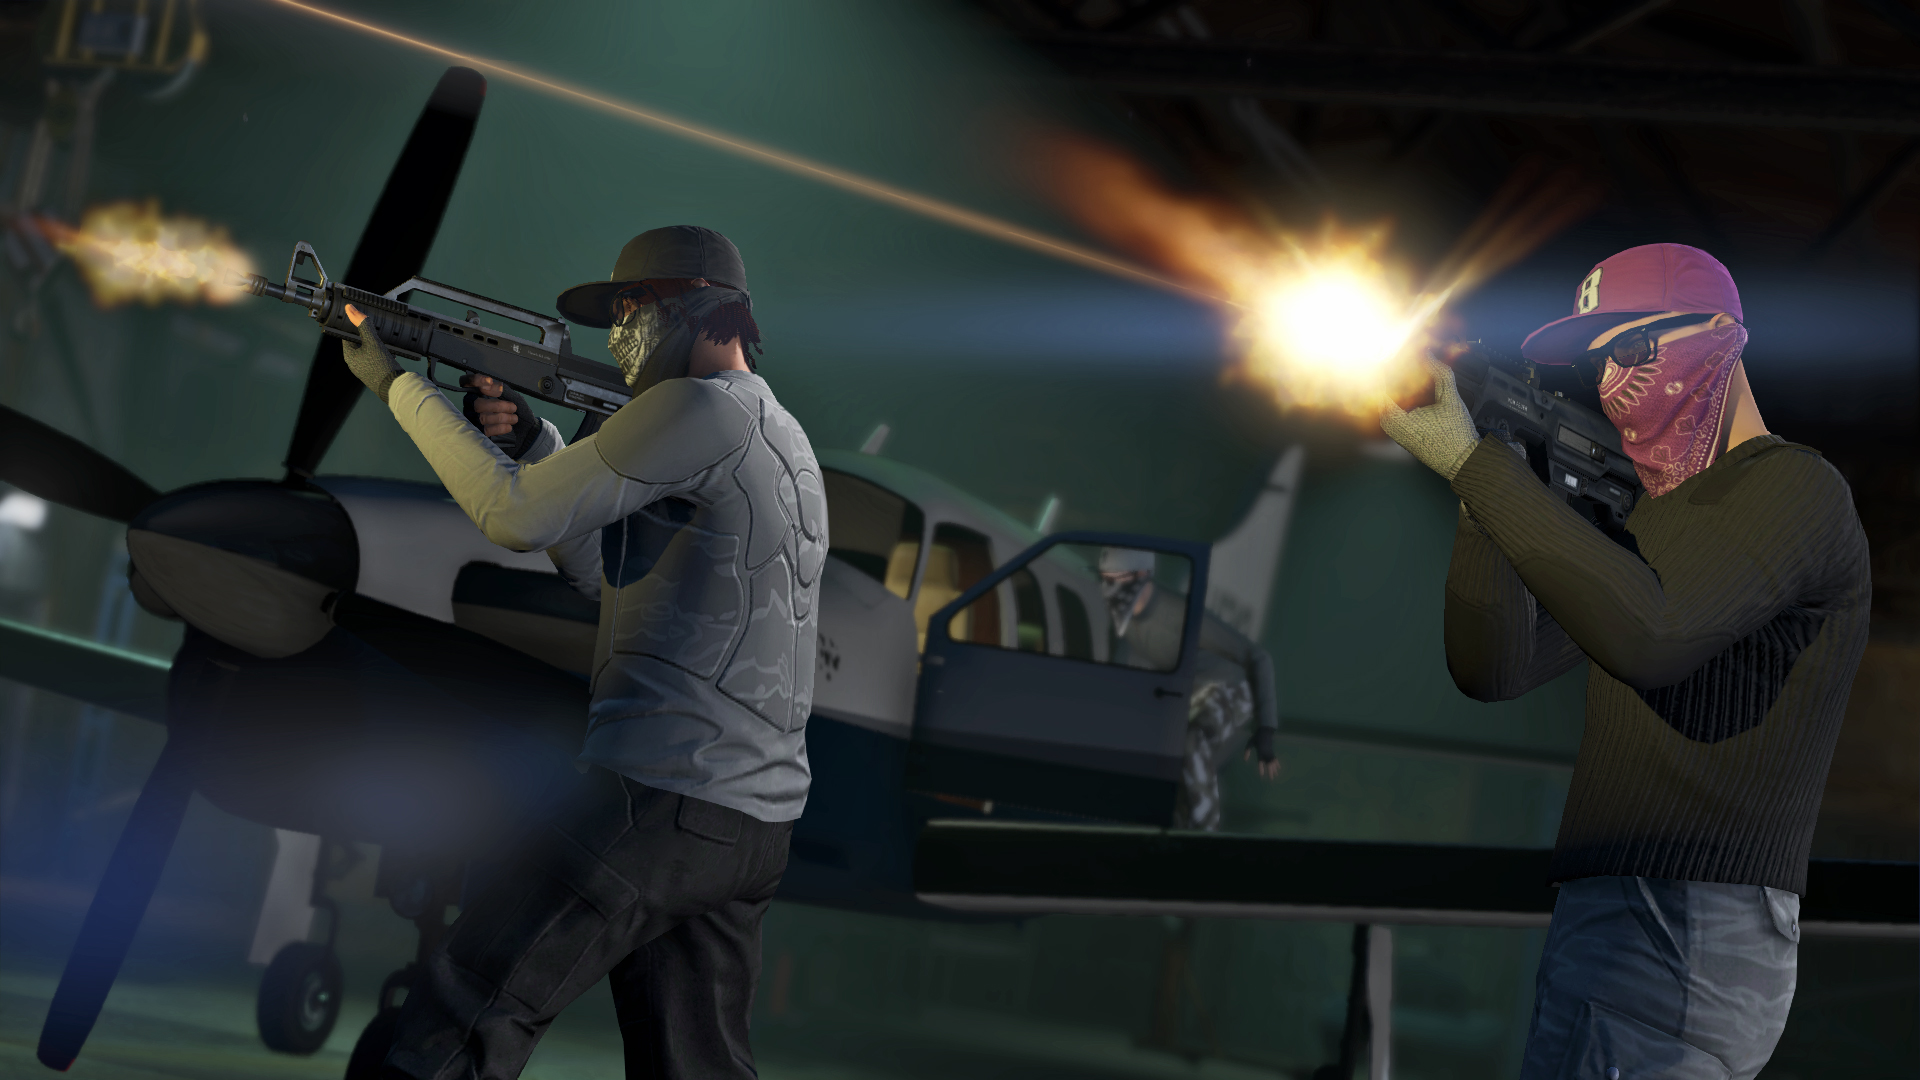 GTA V - Heists release date revealed, PC version delayed